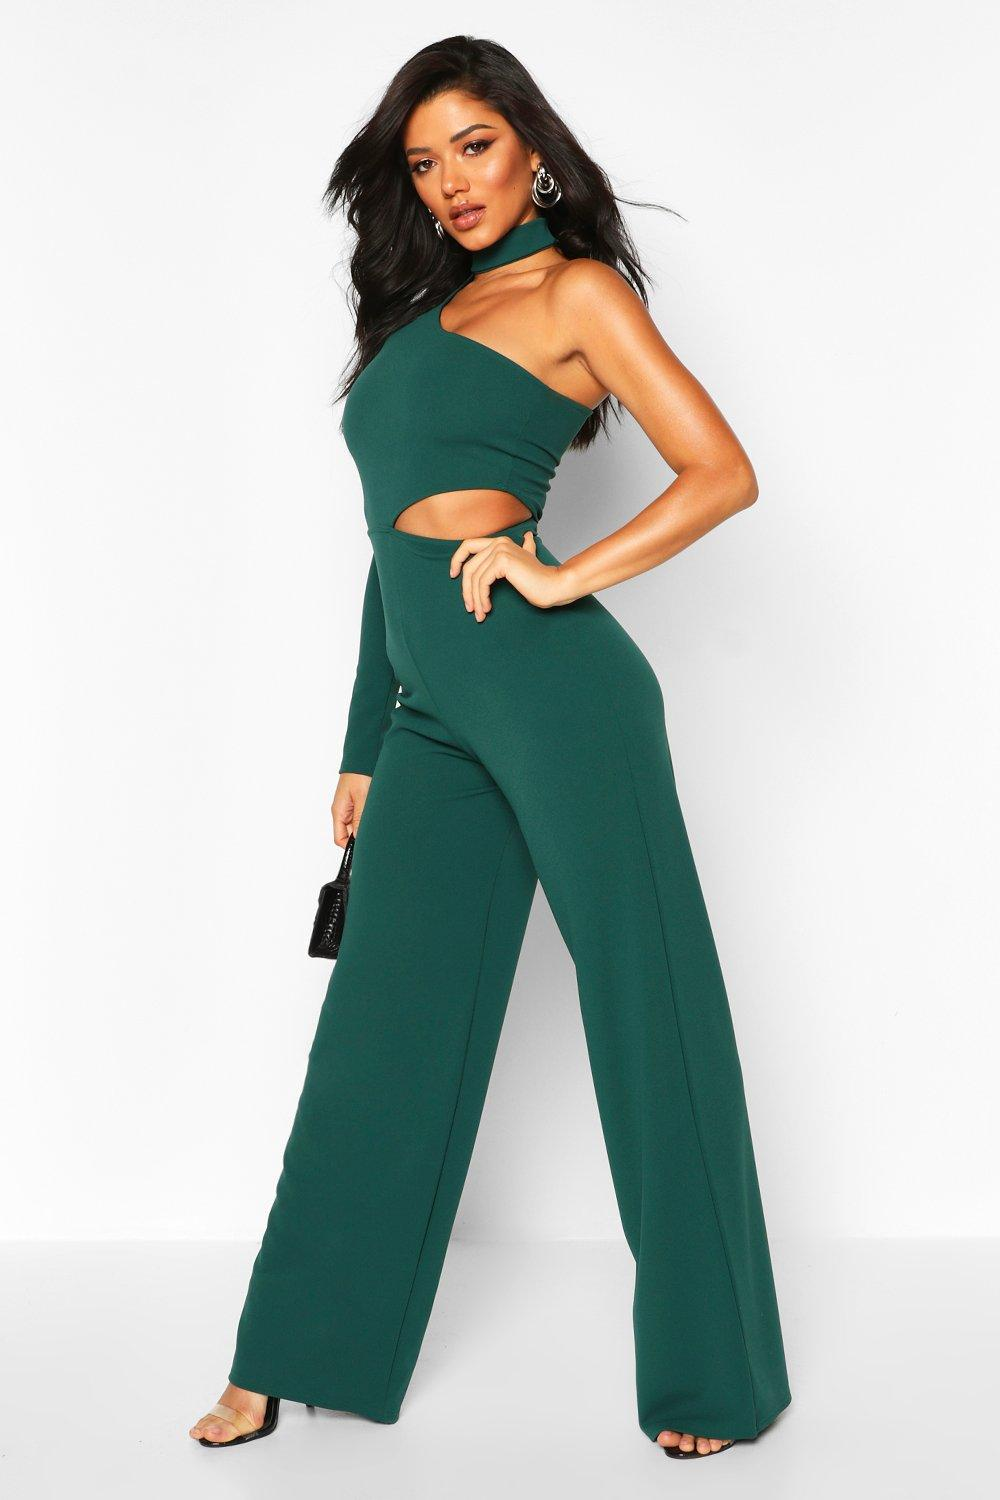 boohoo Womens One Shoulder Wide Leg Cut Side Jumpsuit - Green - 8, Green